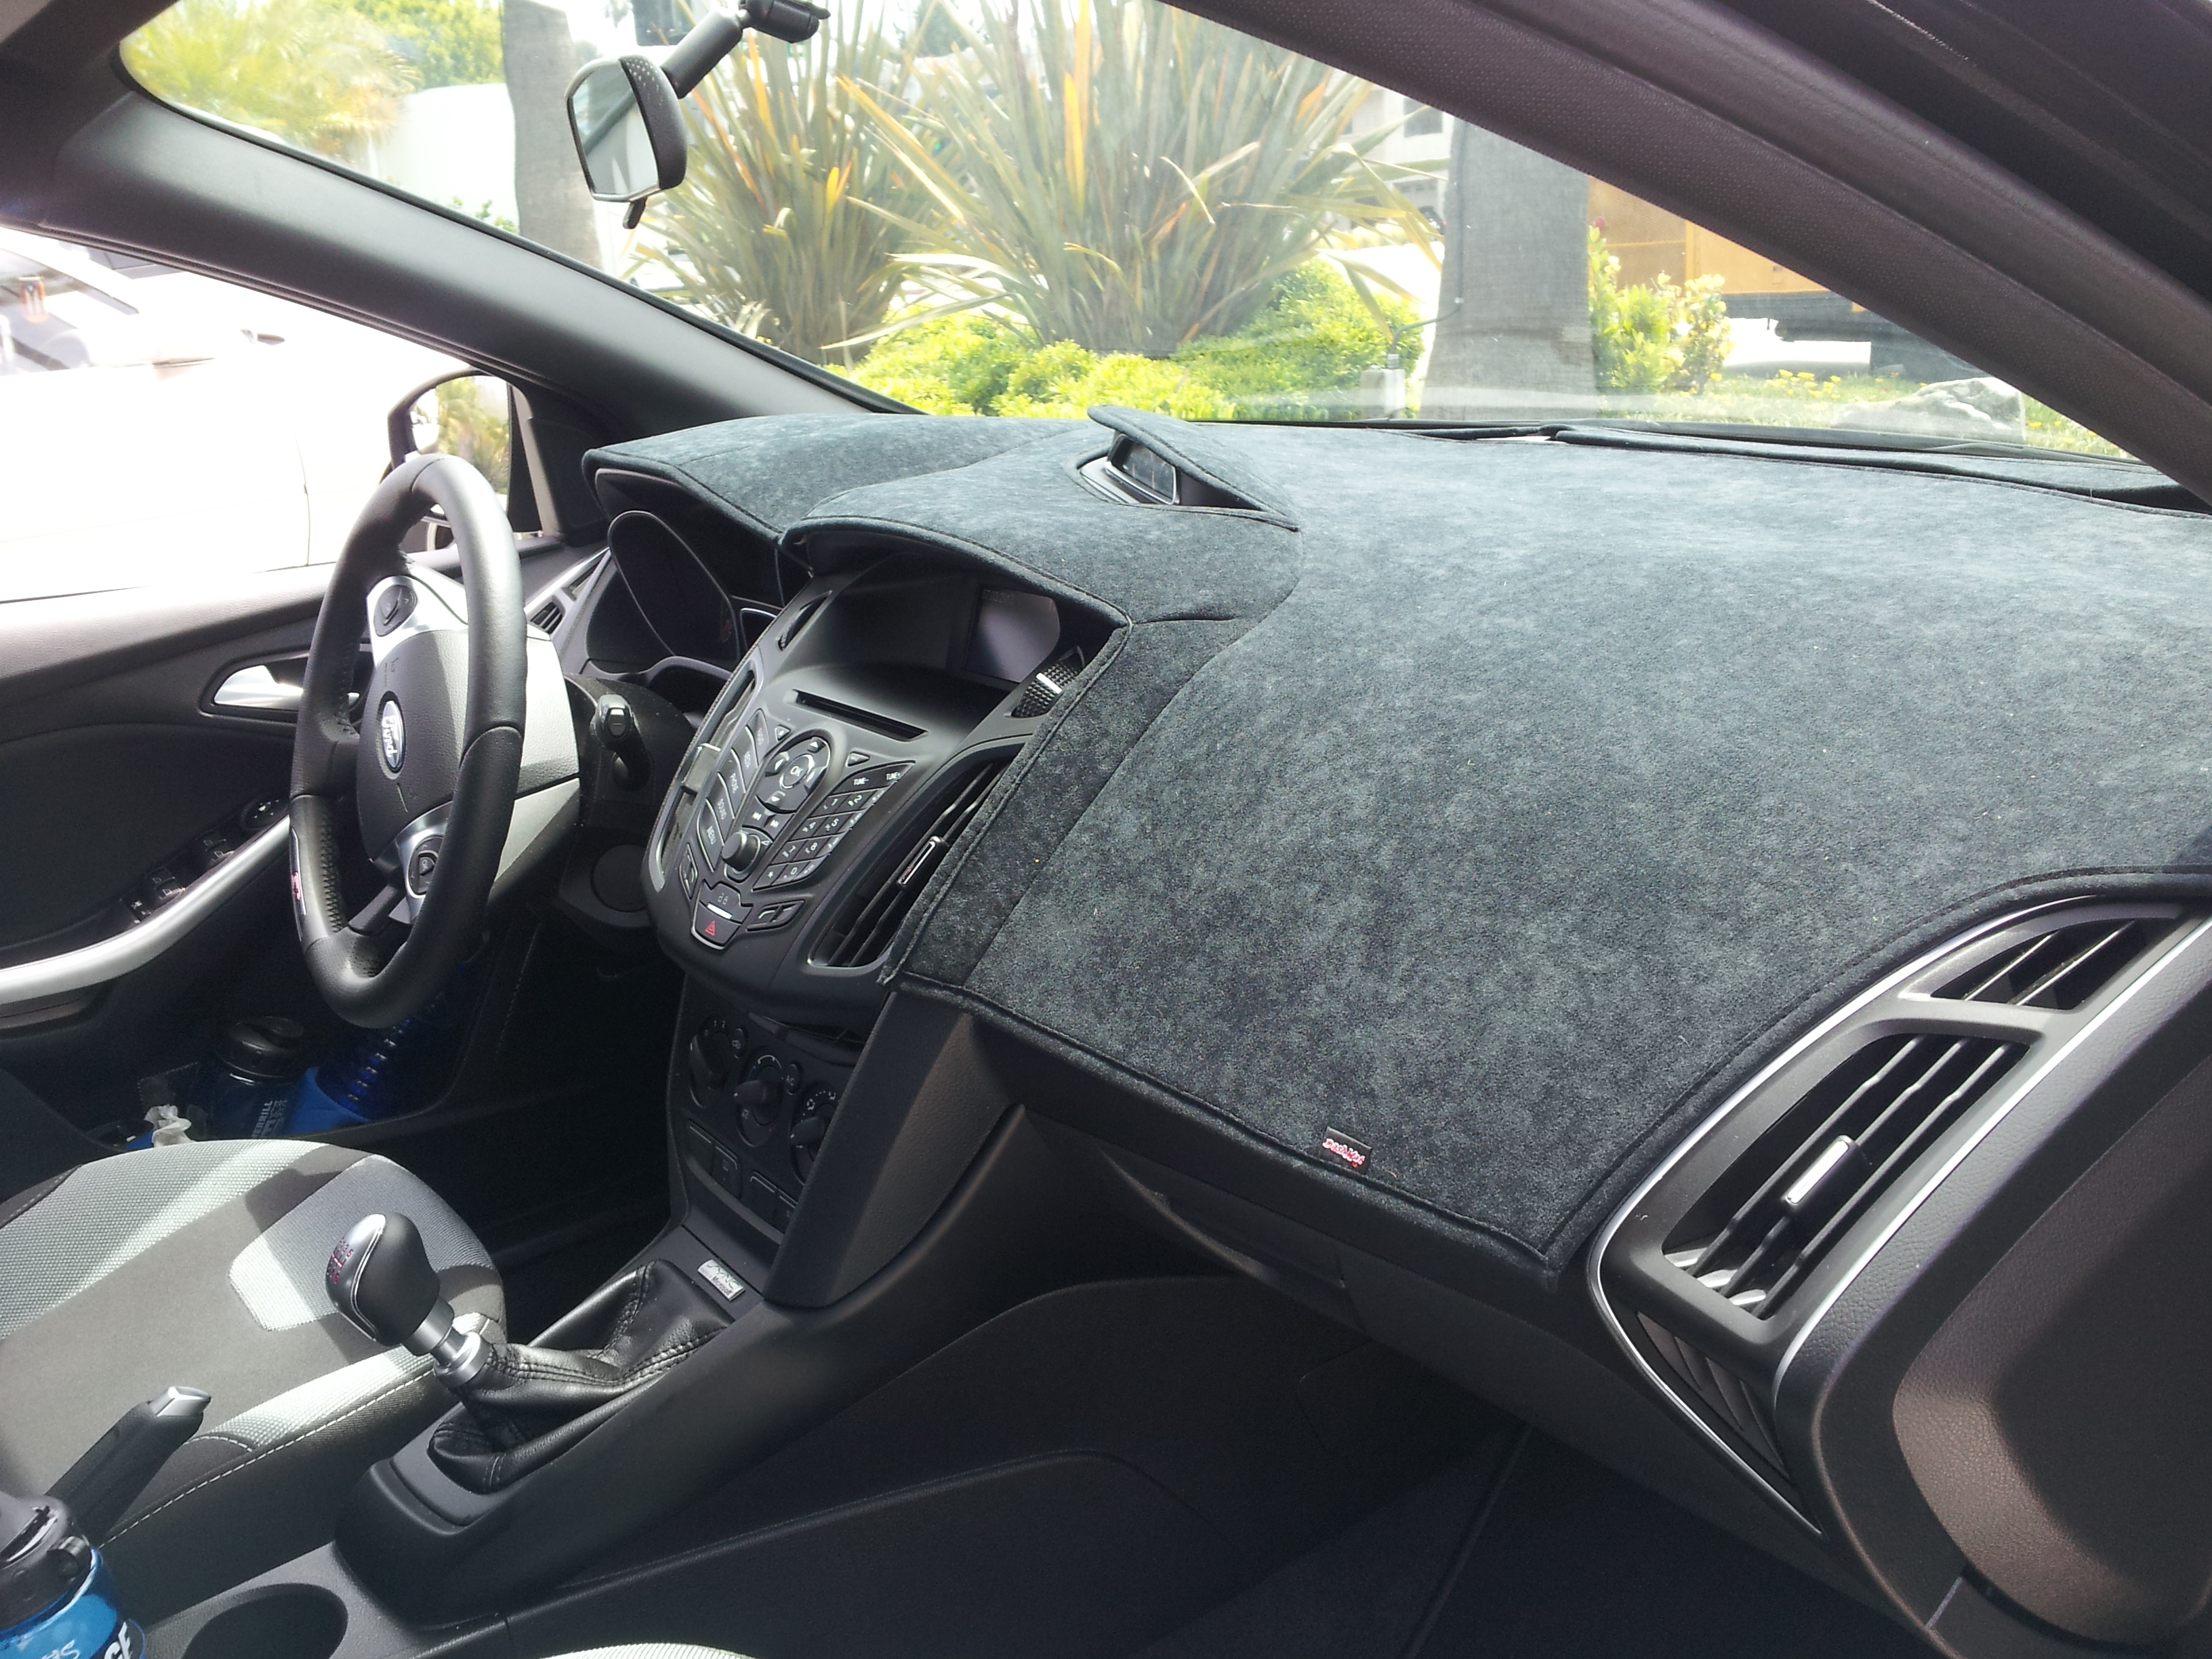 accessories ohio interior outfitters large dash mats in suedemat dashboard callout automotive sidney psg mat